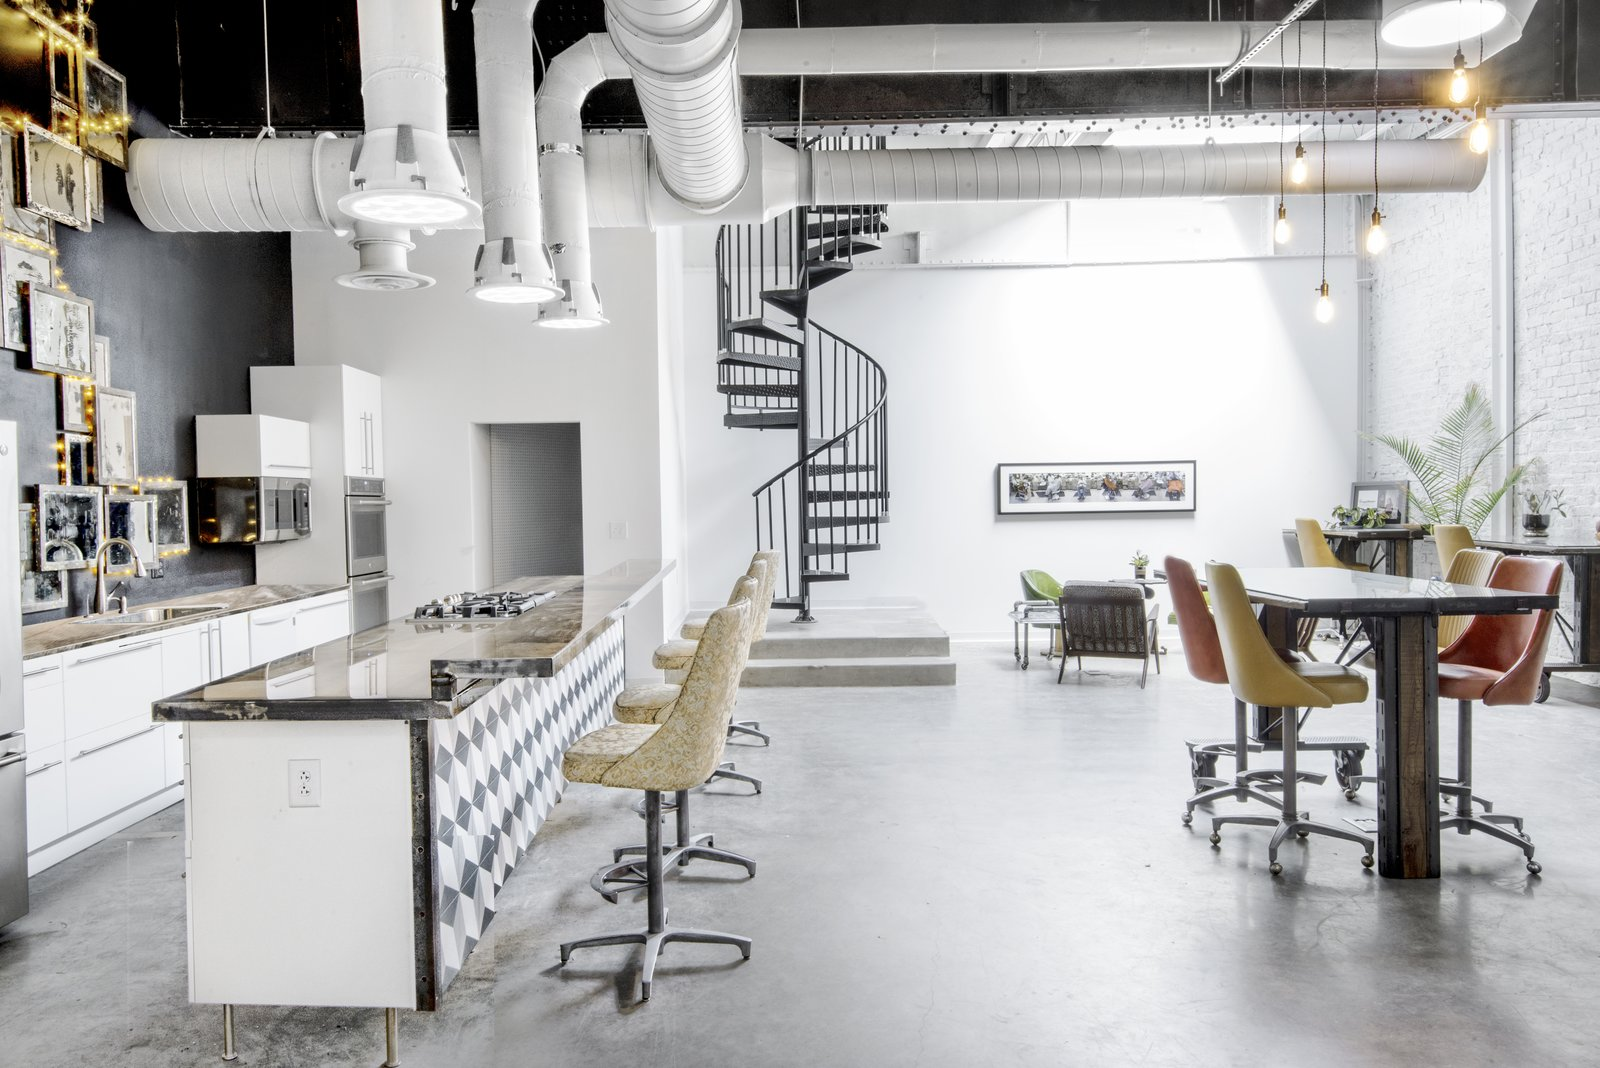 Studio kitchen/bar area, conference and work stations. Furnishings include vintage Chromecraft swivel chairs converted to barstool height.  Studio GoodLight by Liesa Cole